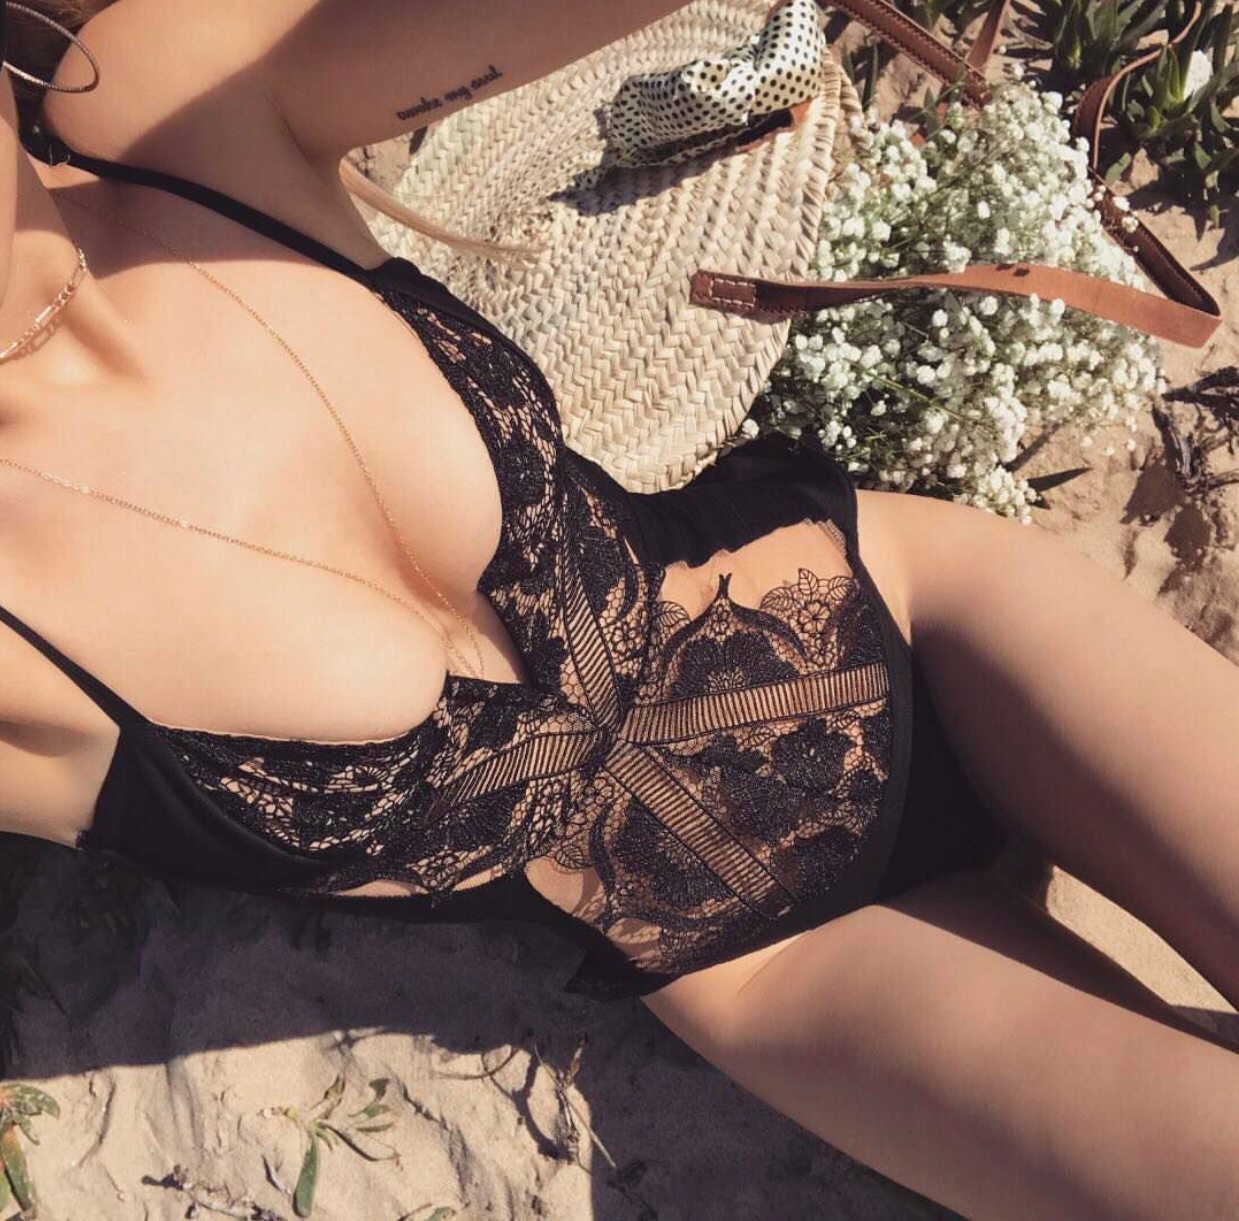 Monokini 2018 Direct Selling Hot Sale Women Swimwear Staerk High End Lace Flesh Show Thin, Sexy Conjoined Swimsuit, Seaside аксессуары для виниловых проигрывателей ortofon stylus 2m mono